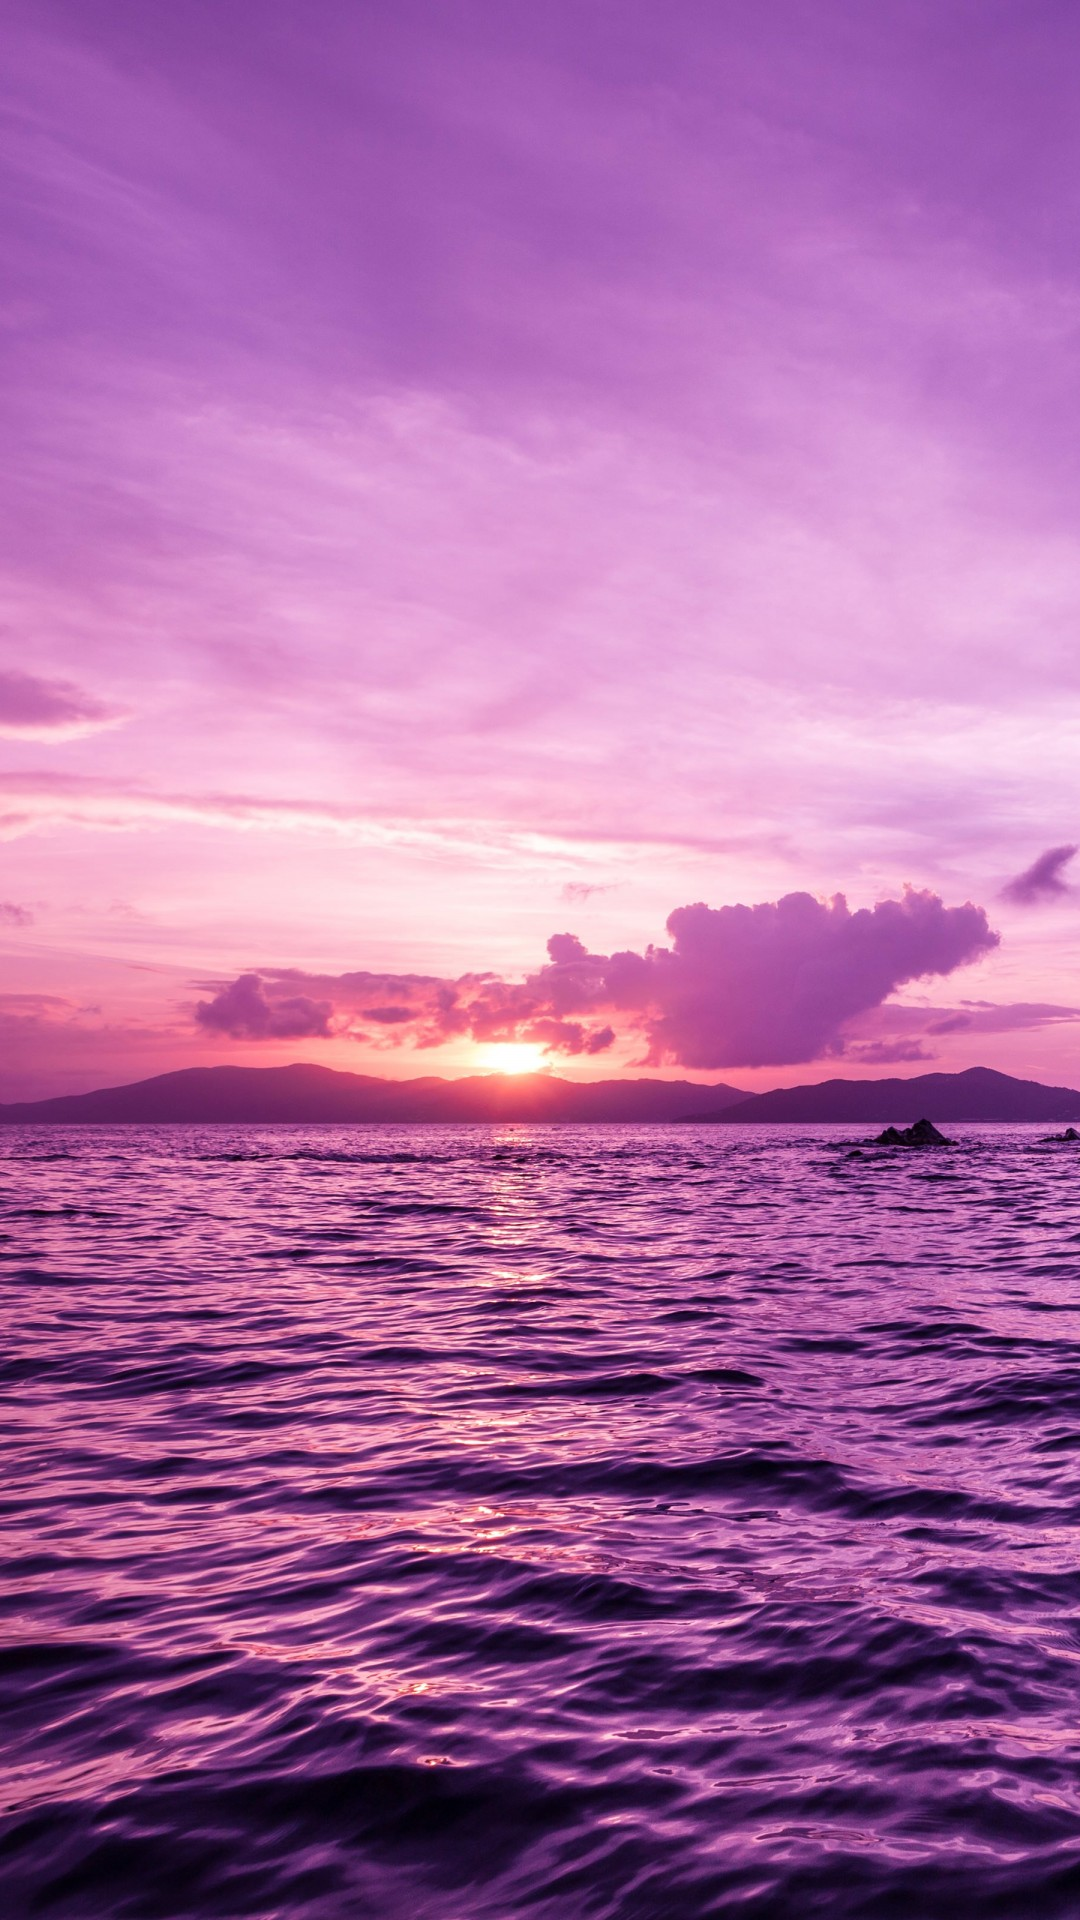 Pelican Island Sunset, British Virgin Islands Wallpaper for SONY Xperia Z3